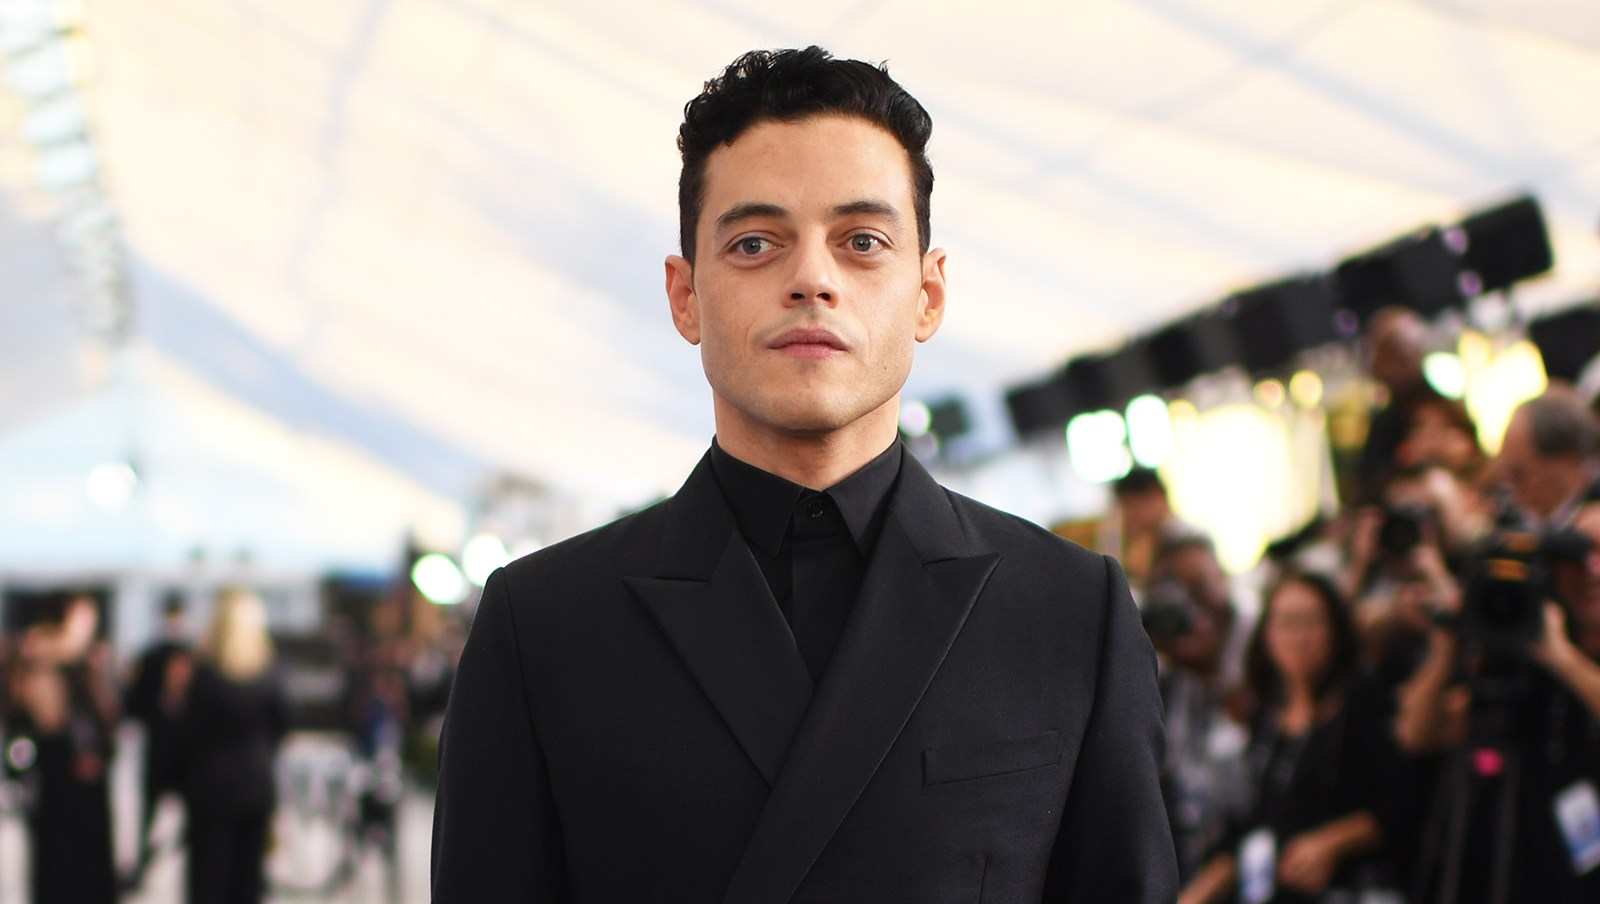 Rami Malek Recalls Snagging 'Gilmore Girls' Role - and Delivering Pizzas